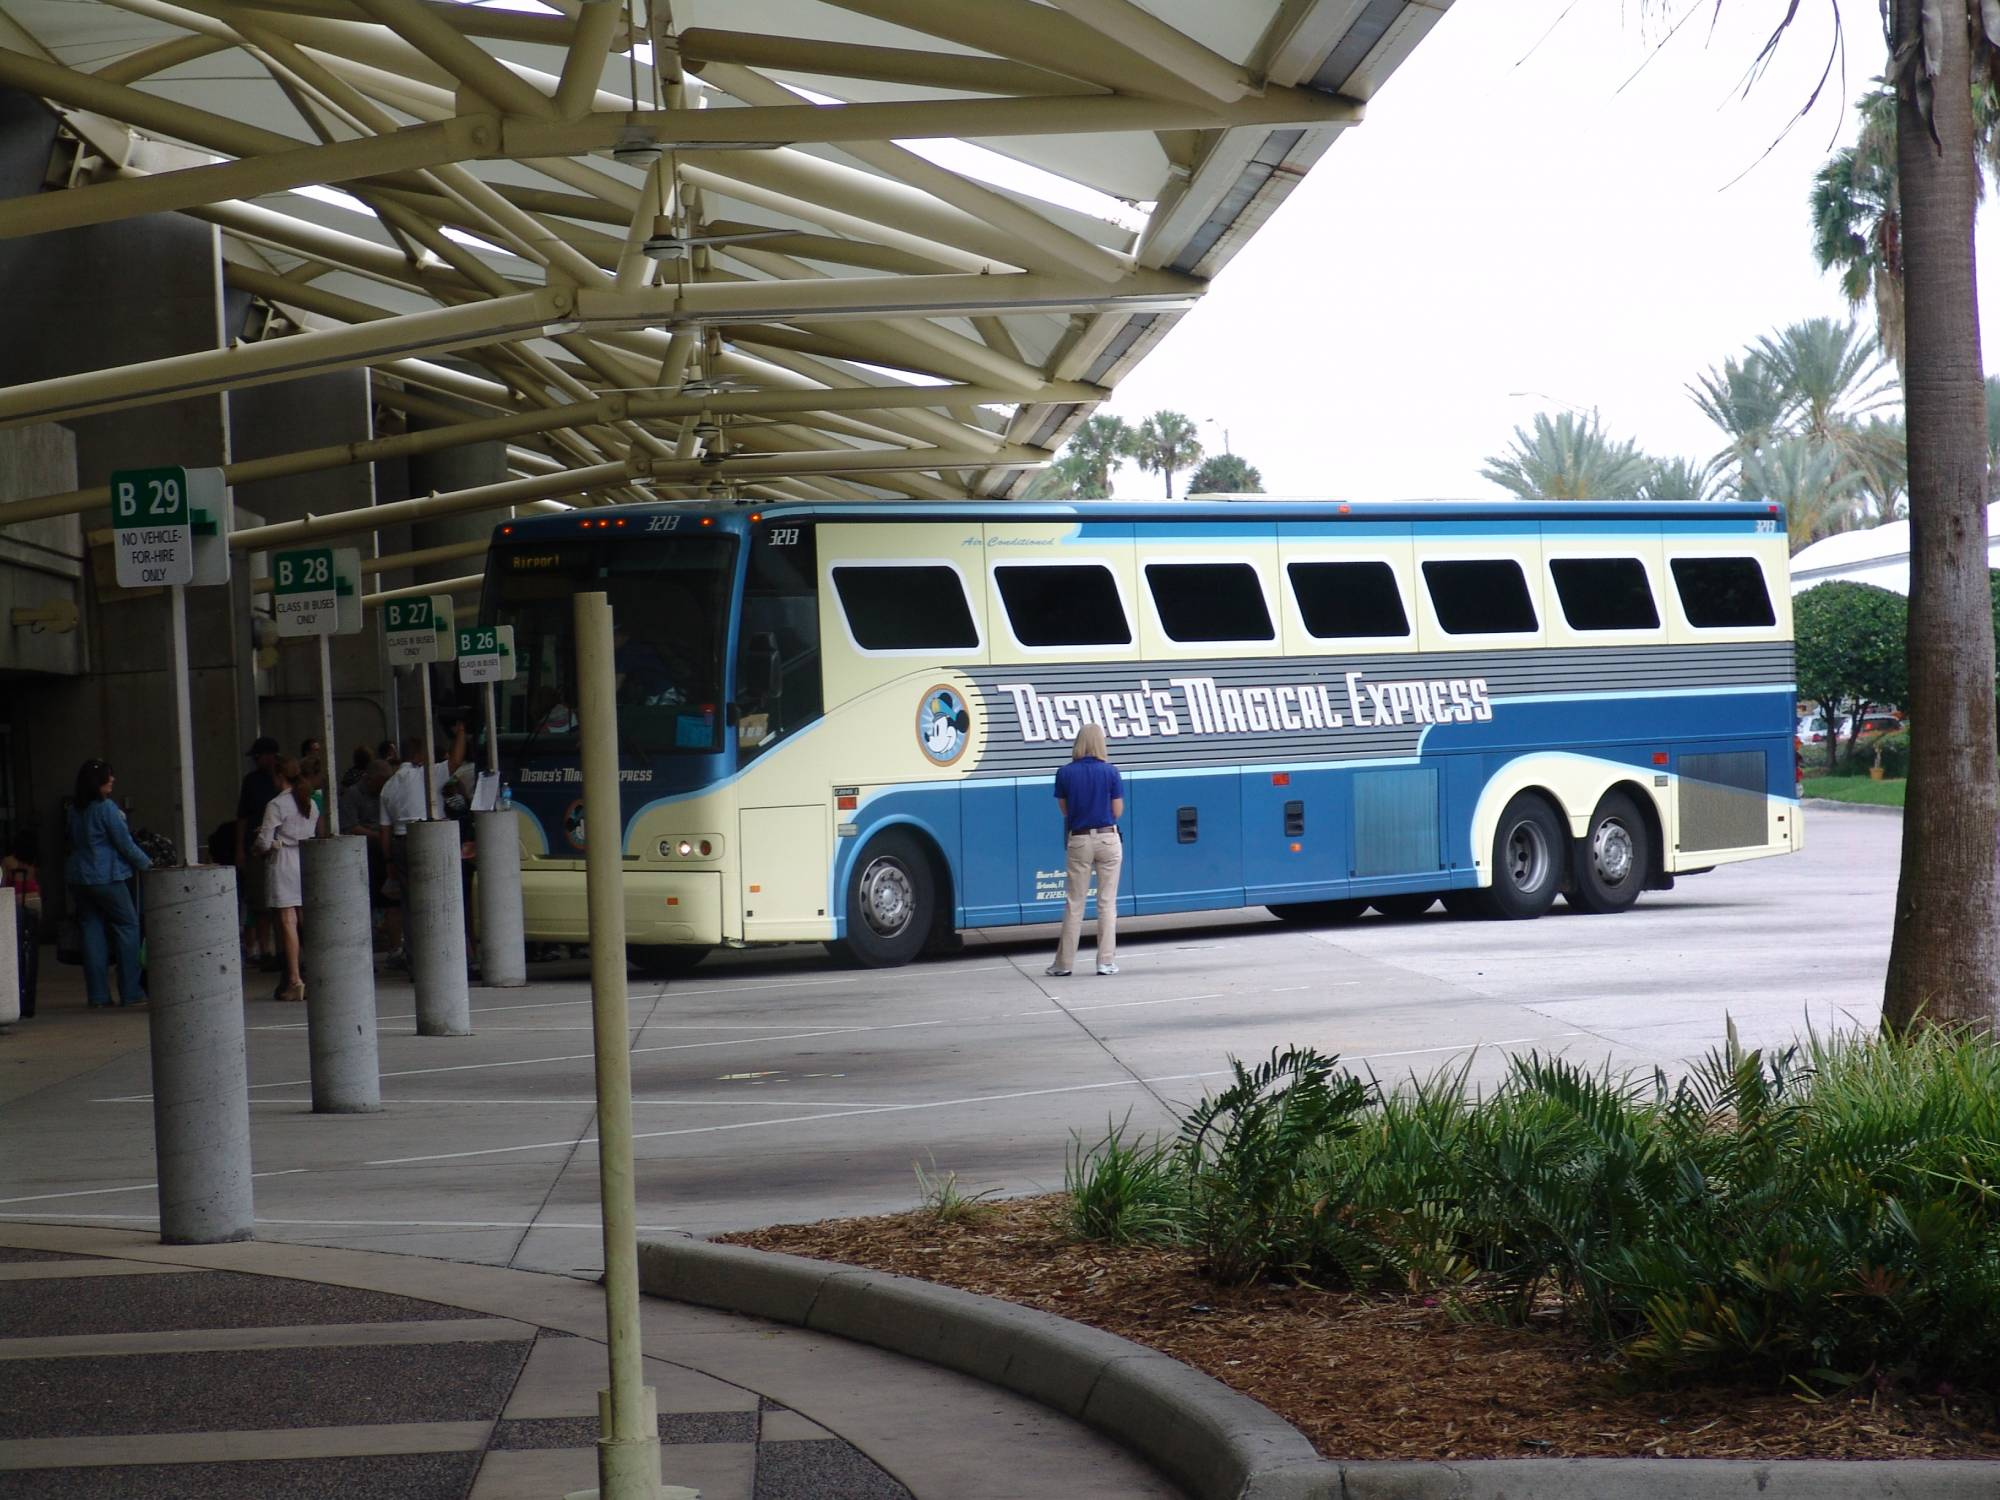 Orlando International Airport - Disney's Magical Express bus